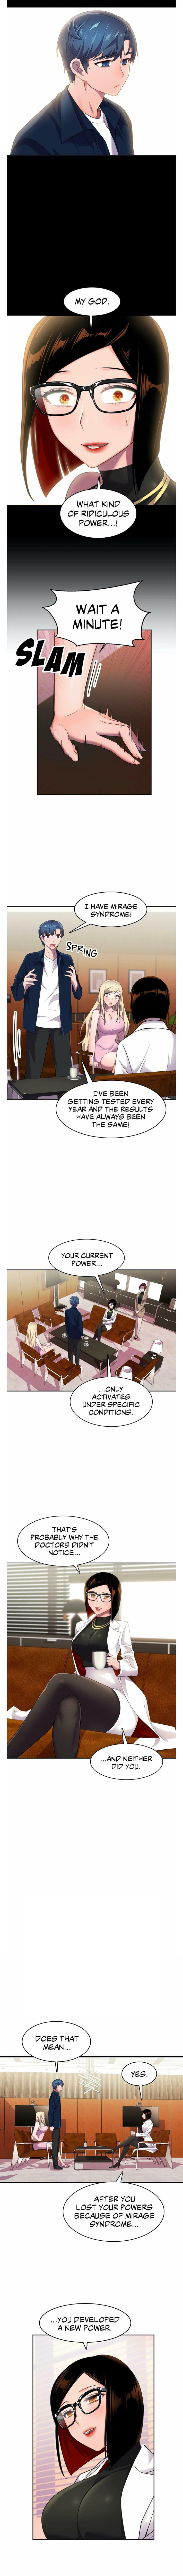 HERO MANAGER Ch. 1-15 90